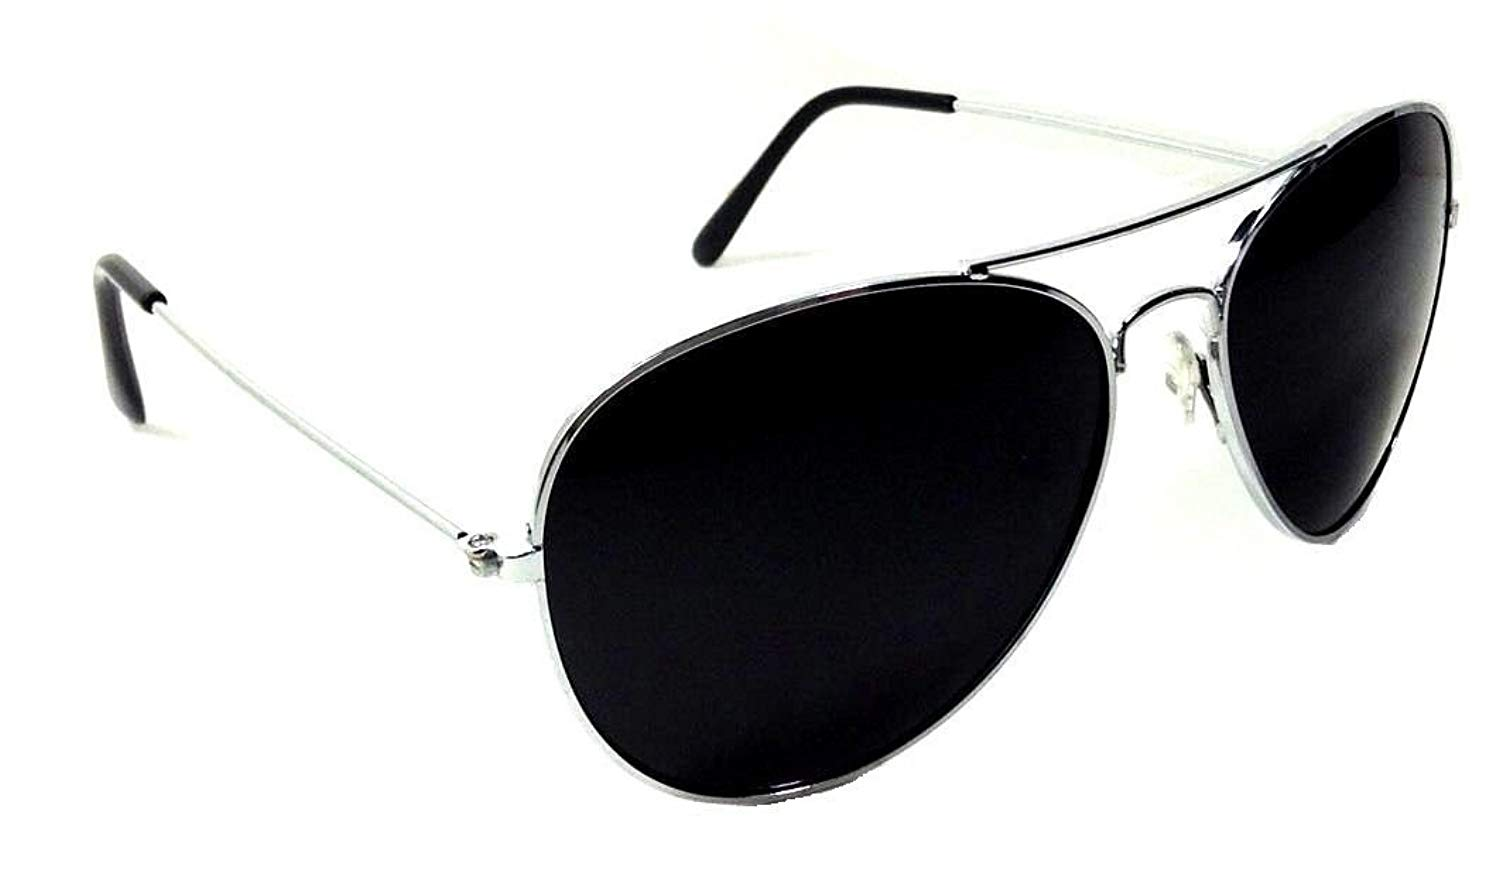 839846e3f37 Get Quotations · Black   Gold Pilot Aviator Sunglasses